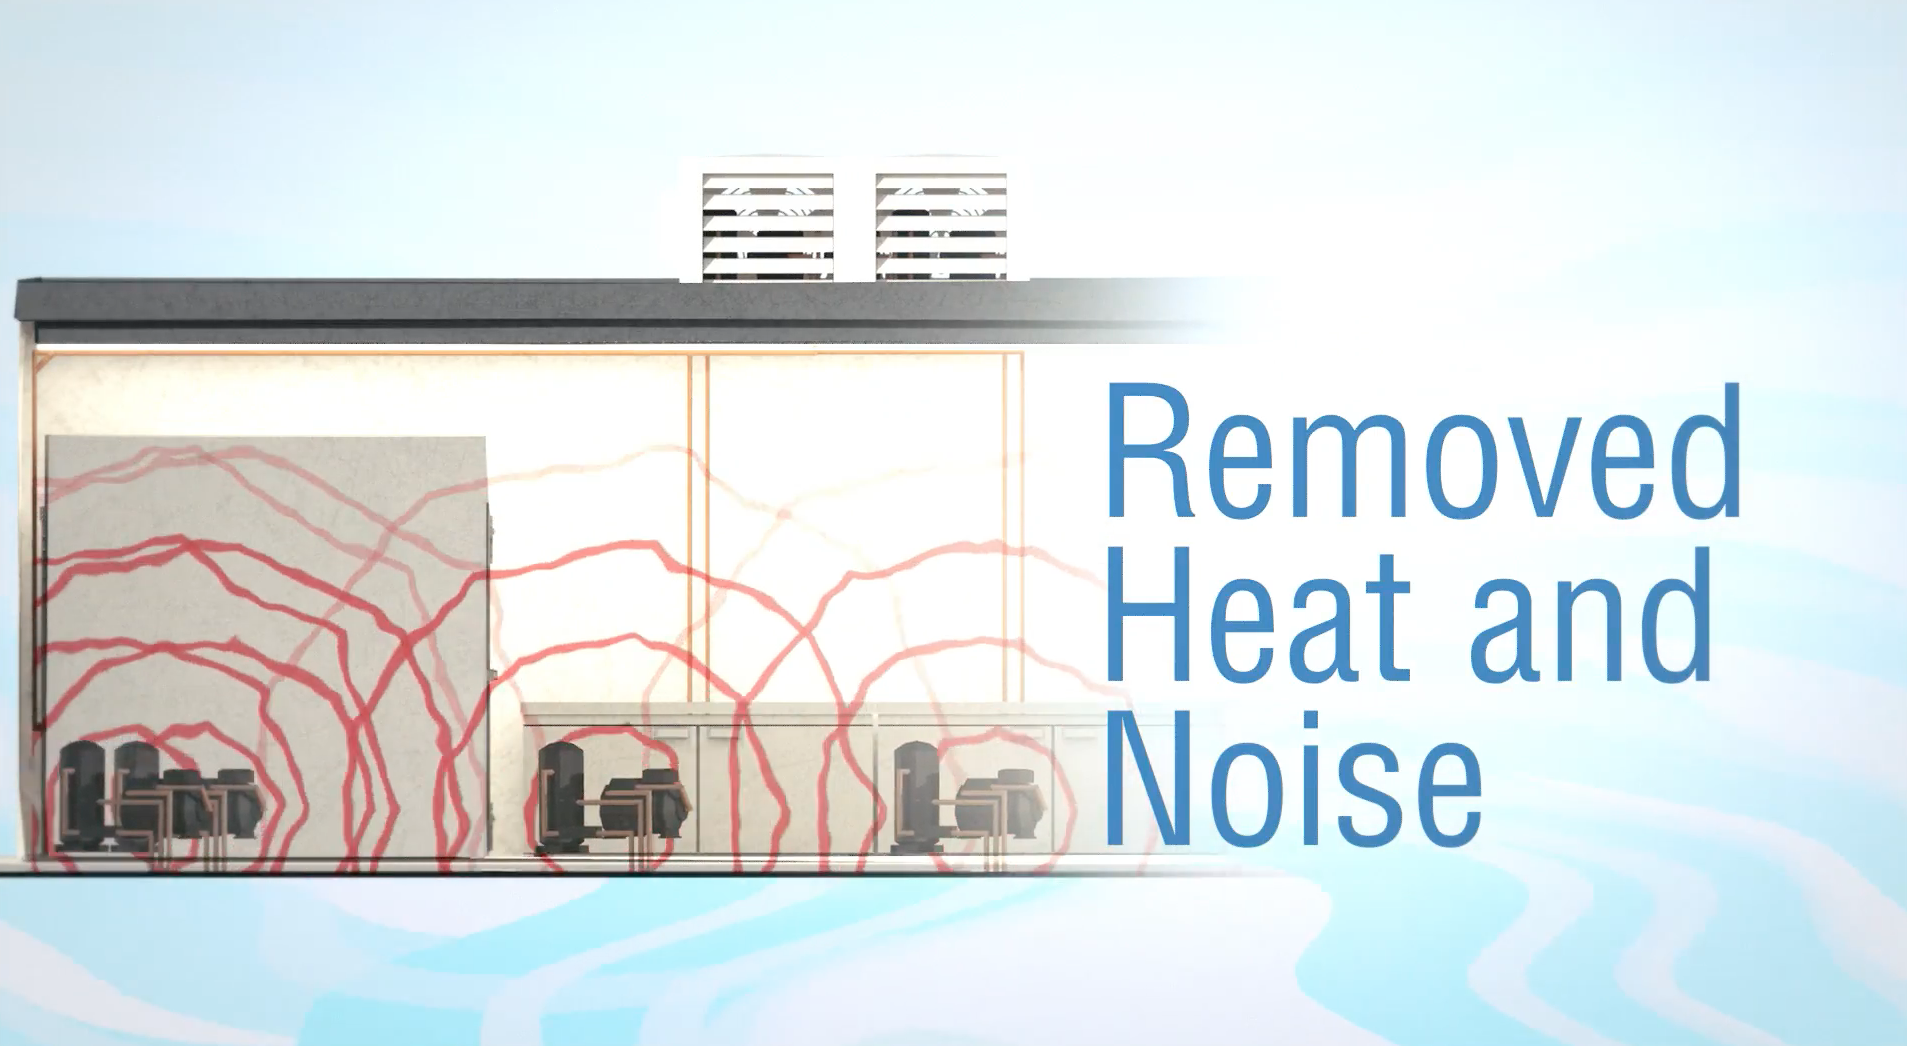 Benefits of Remote Refrigeration in Your Foodservice Operation